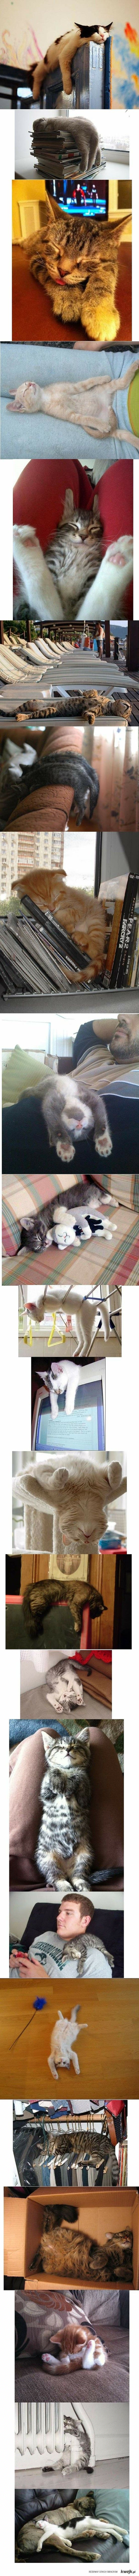 I don't know which one is more cute, the cat on the clothes rail or IN THE TROUSERS HANGERS!